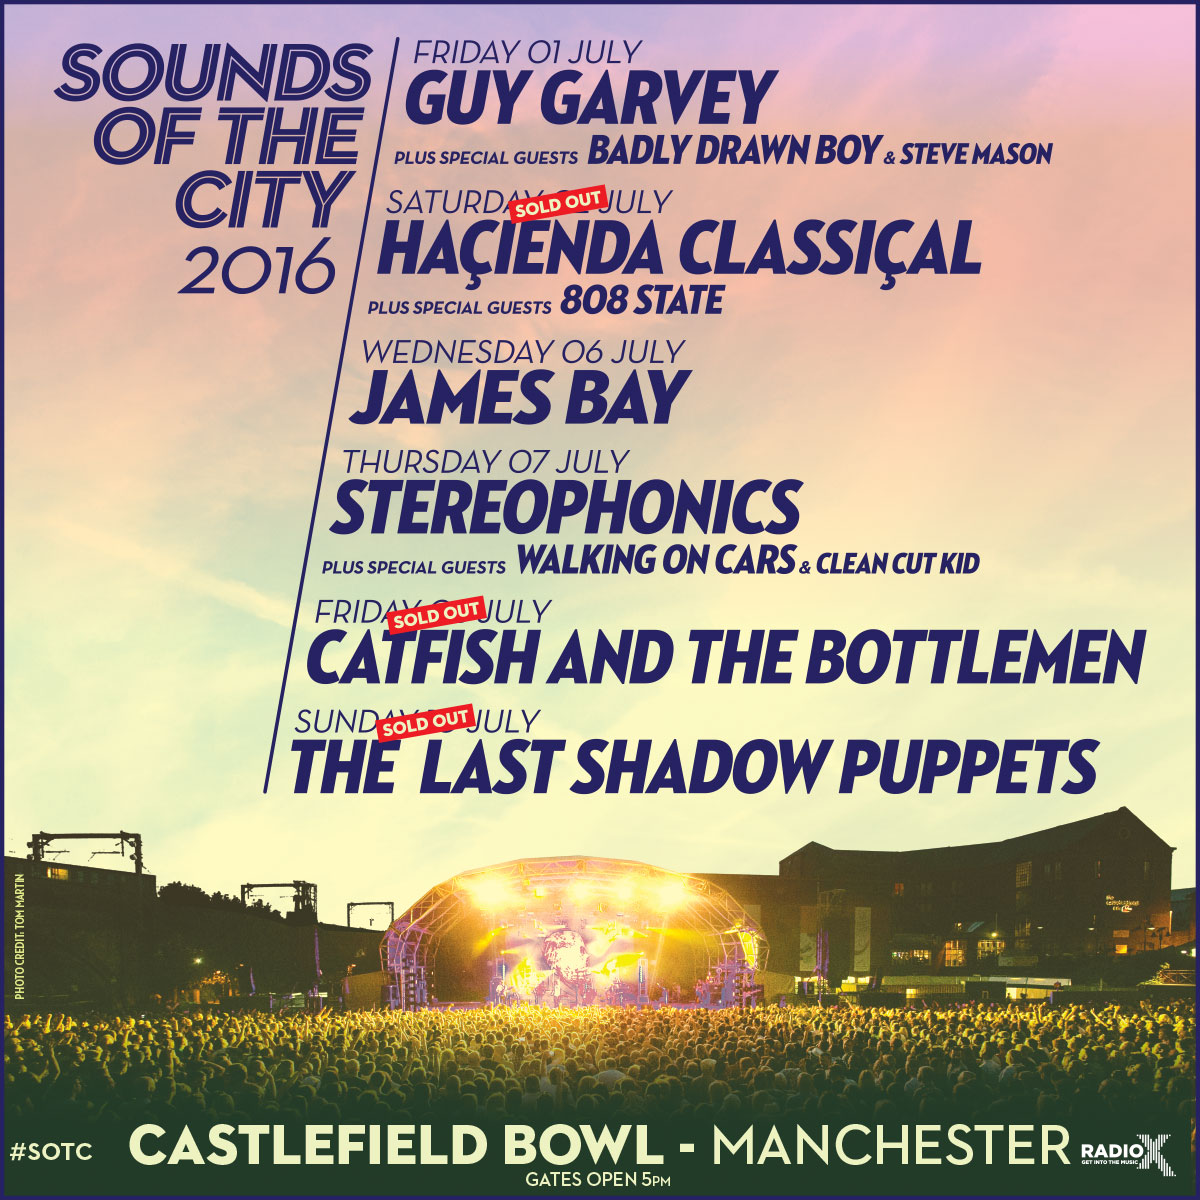 Sounds Of The City 2016 Line Up